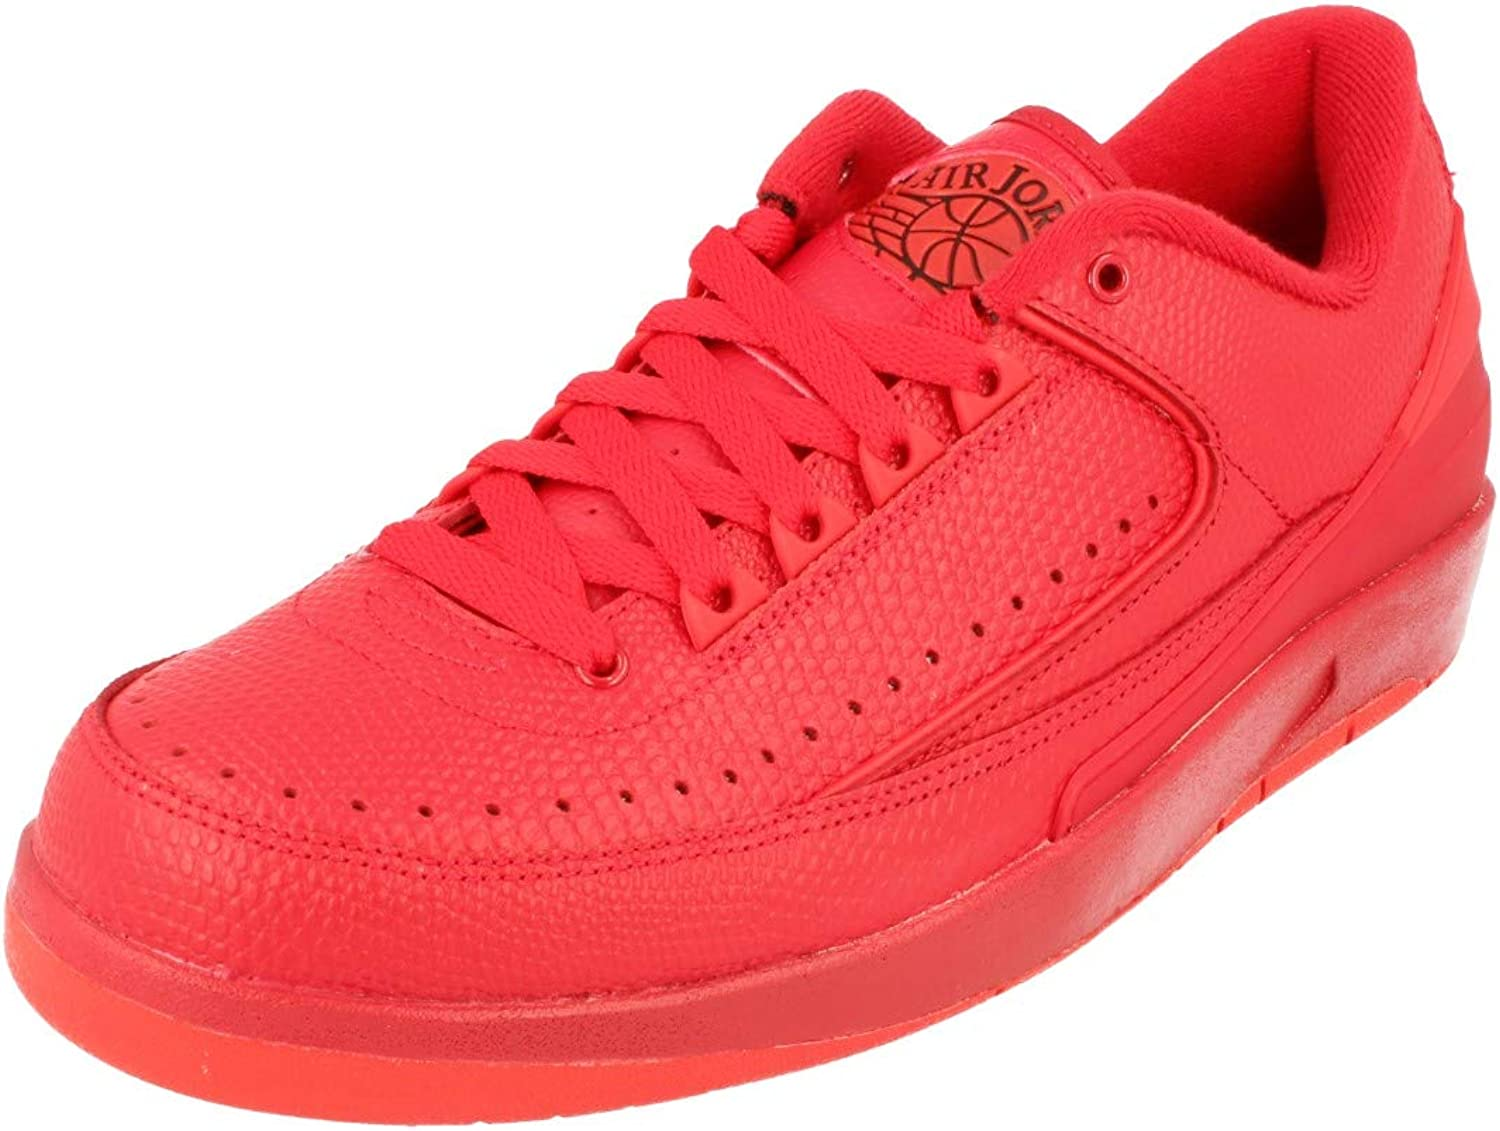 NIKE Air Jordan 2 Retro Low